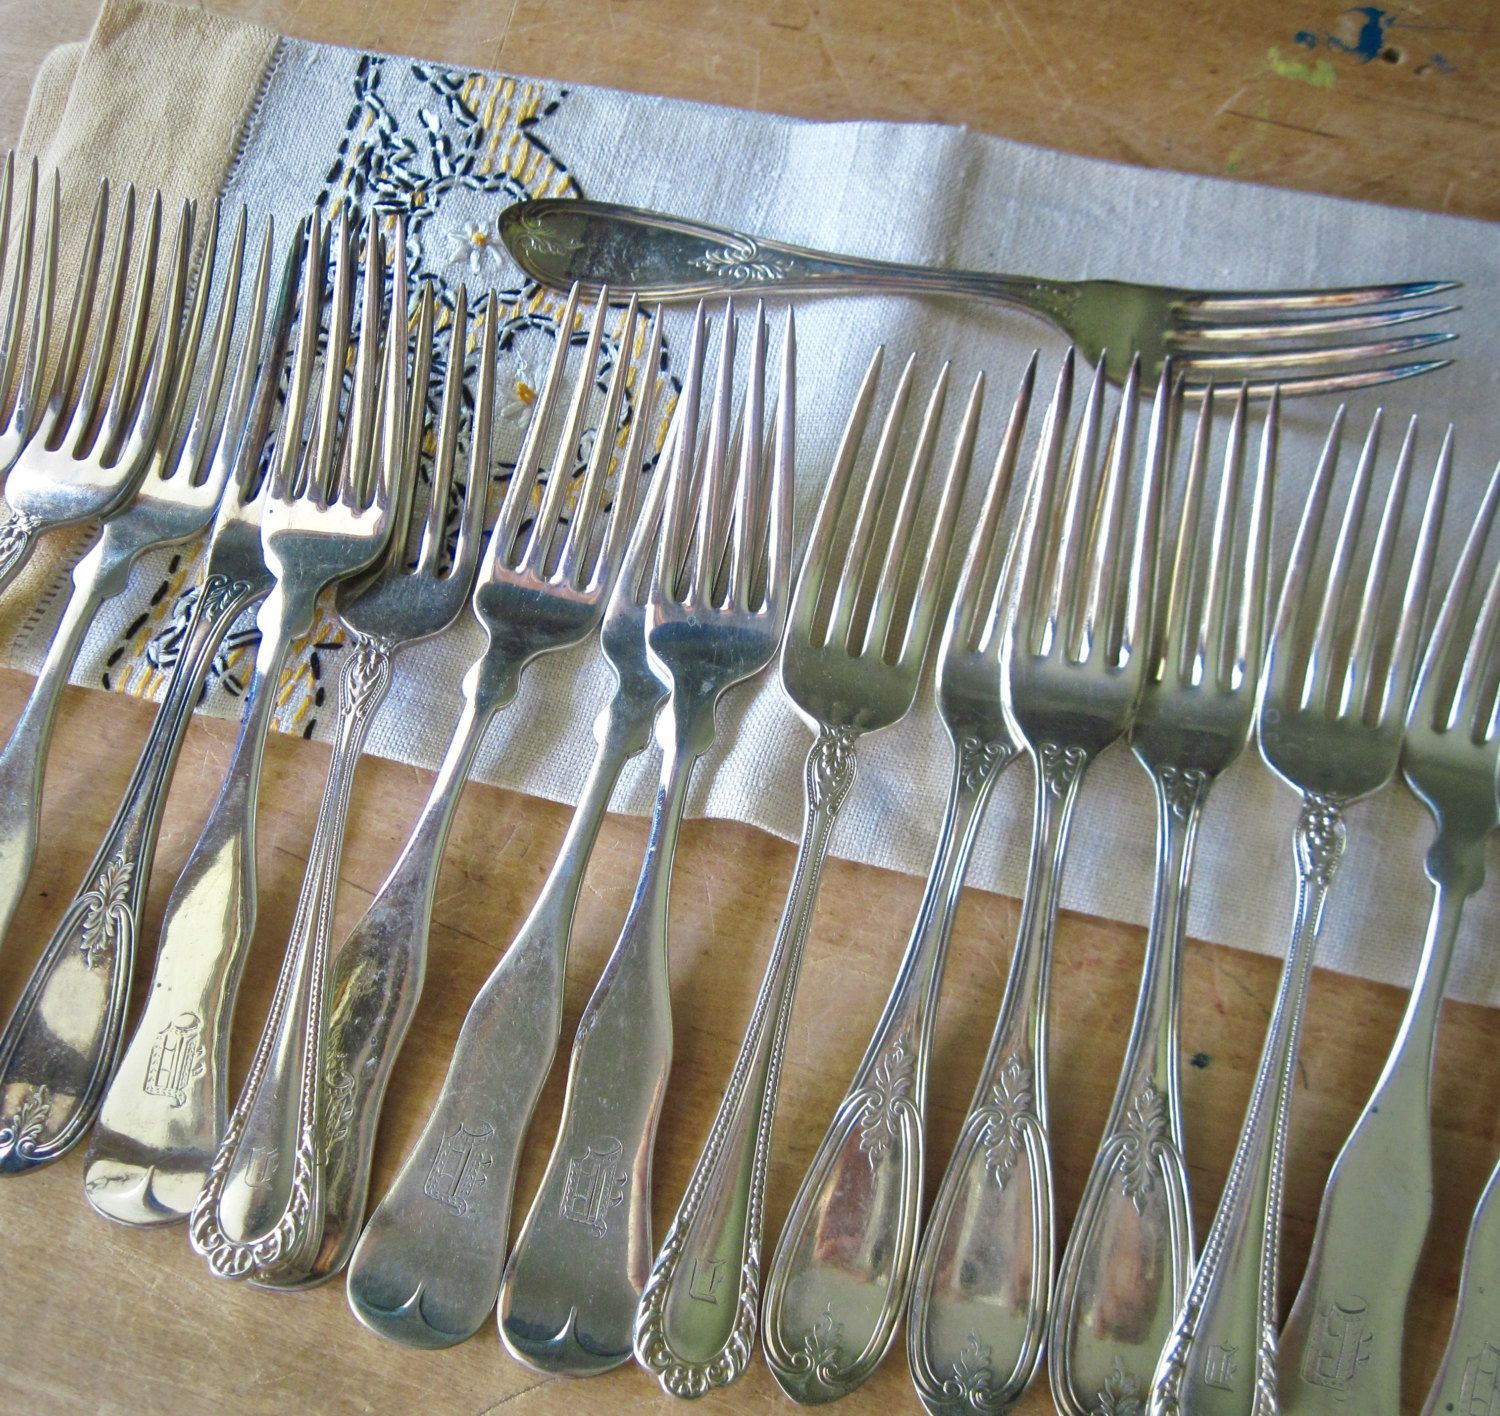 Rustic Silverware Mismatched Silverware Flatware Silver Plate Forks